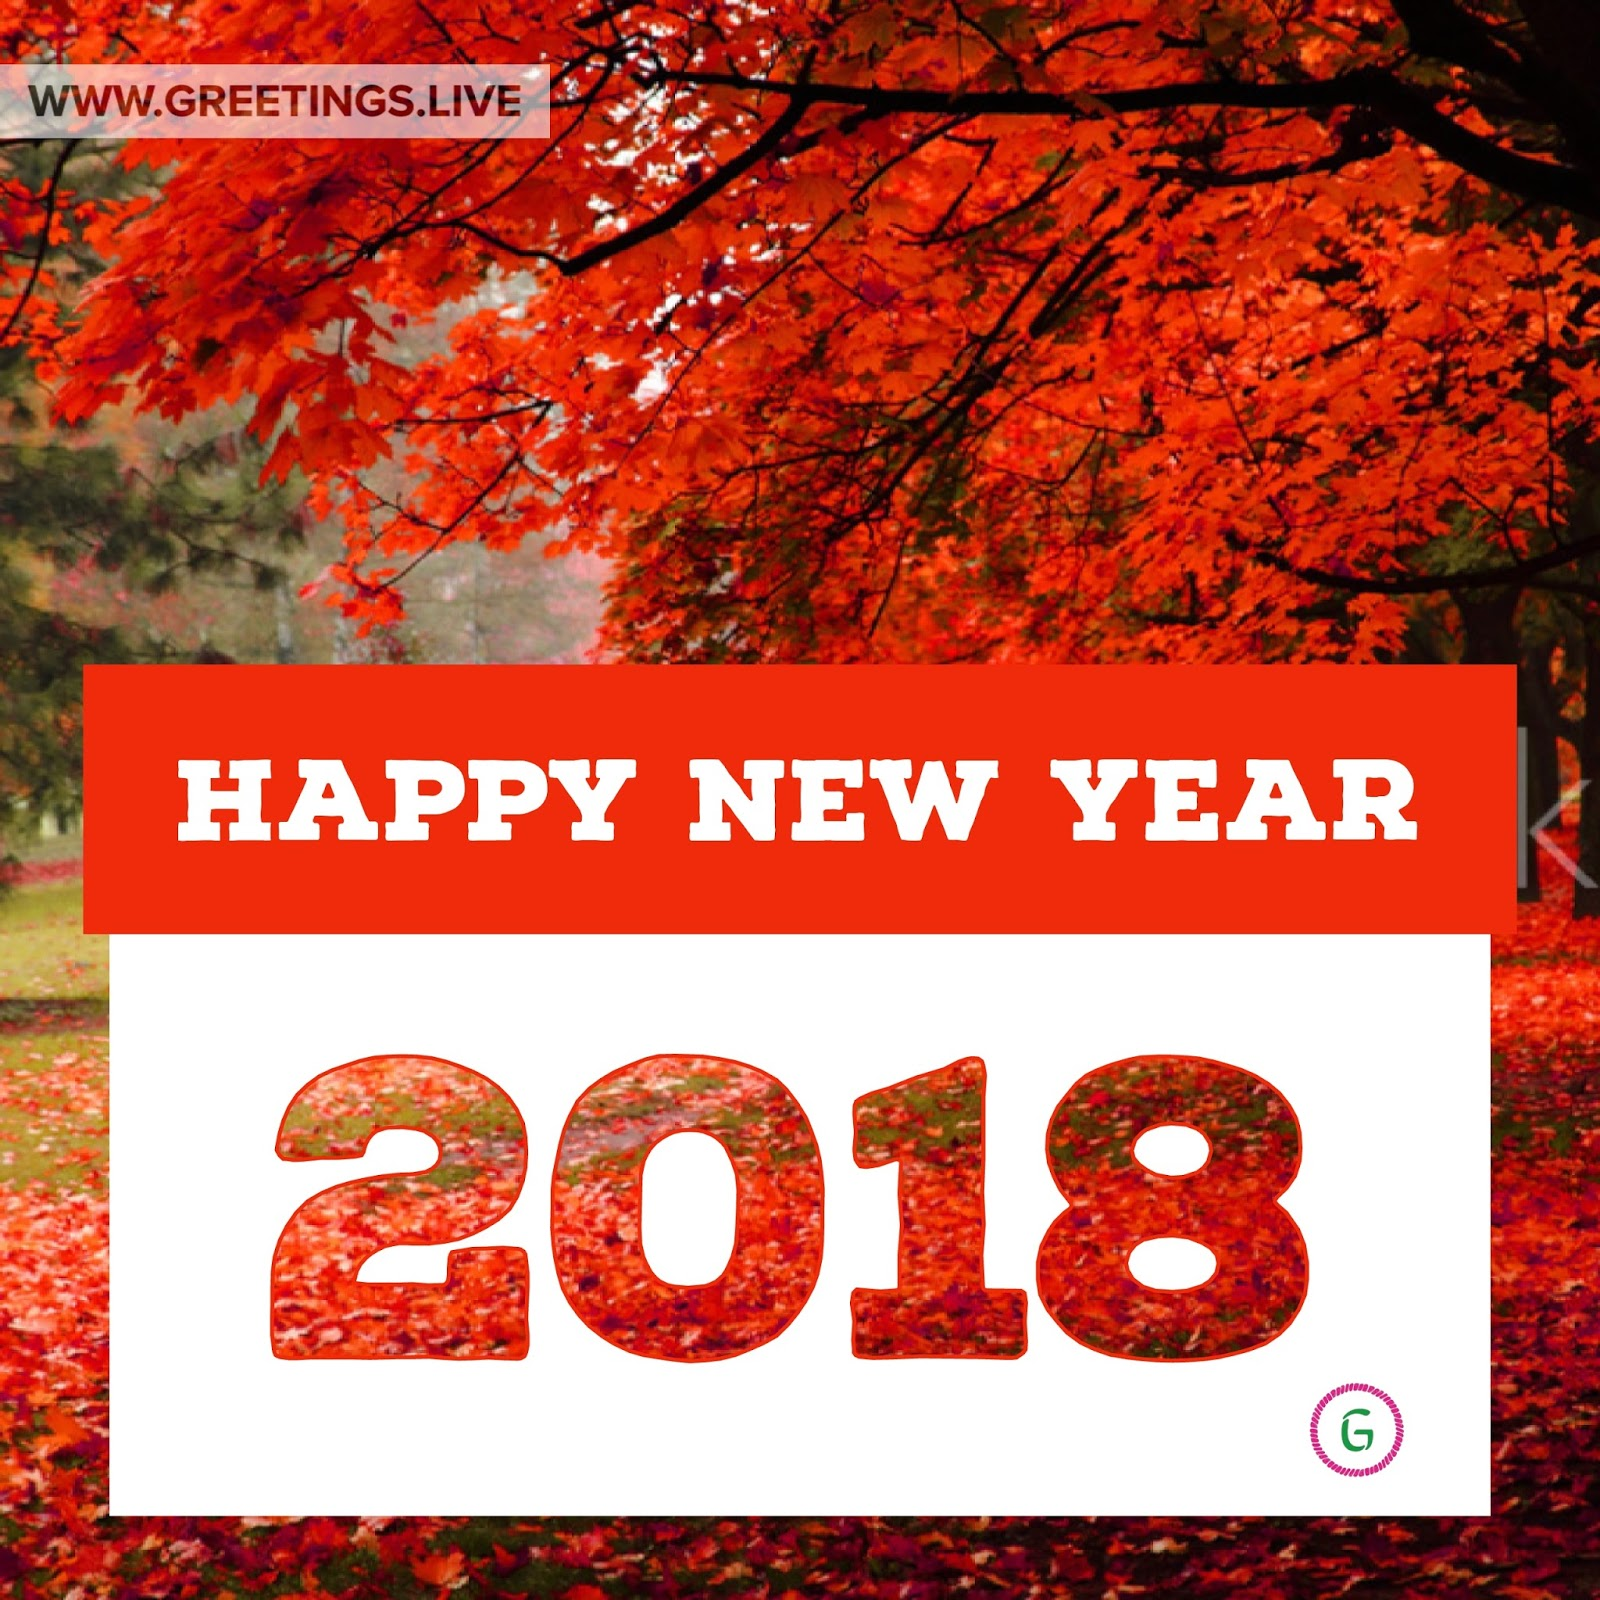 how to say new year wishes in telugu